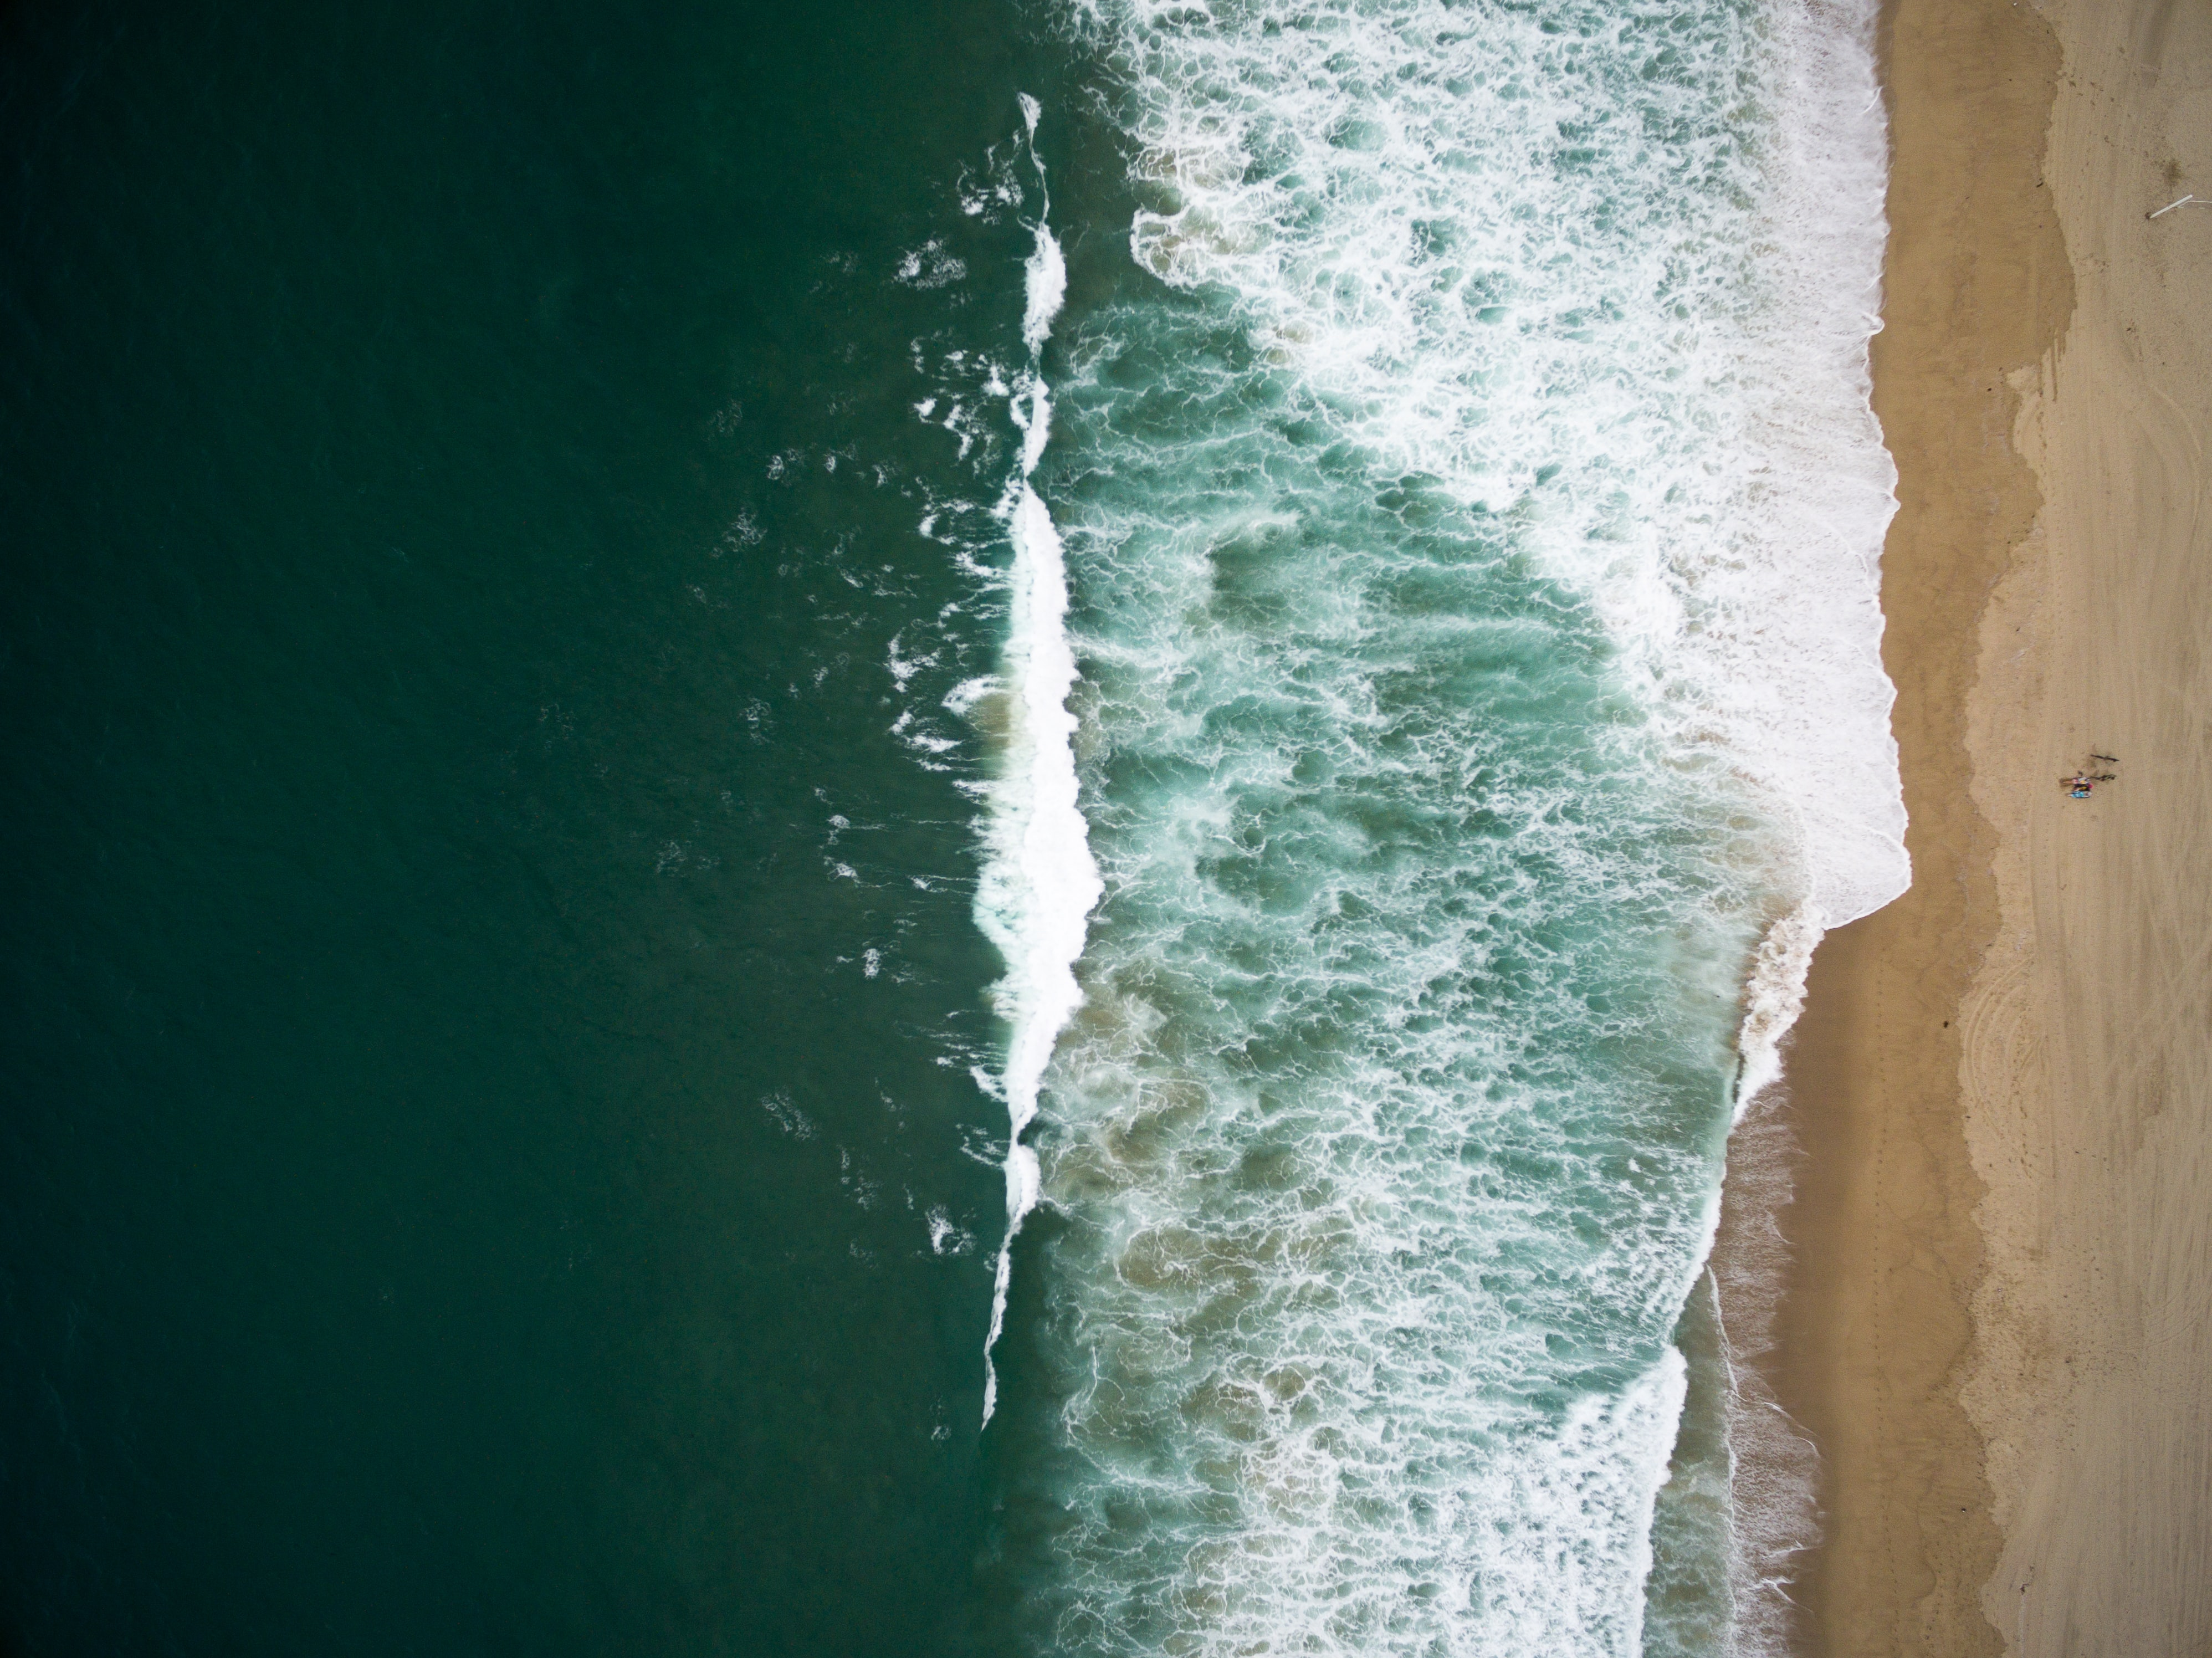 Drone aerial view of the ocean washing on the sand beach in South Redondo, Redondo Beach, California,